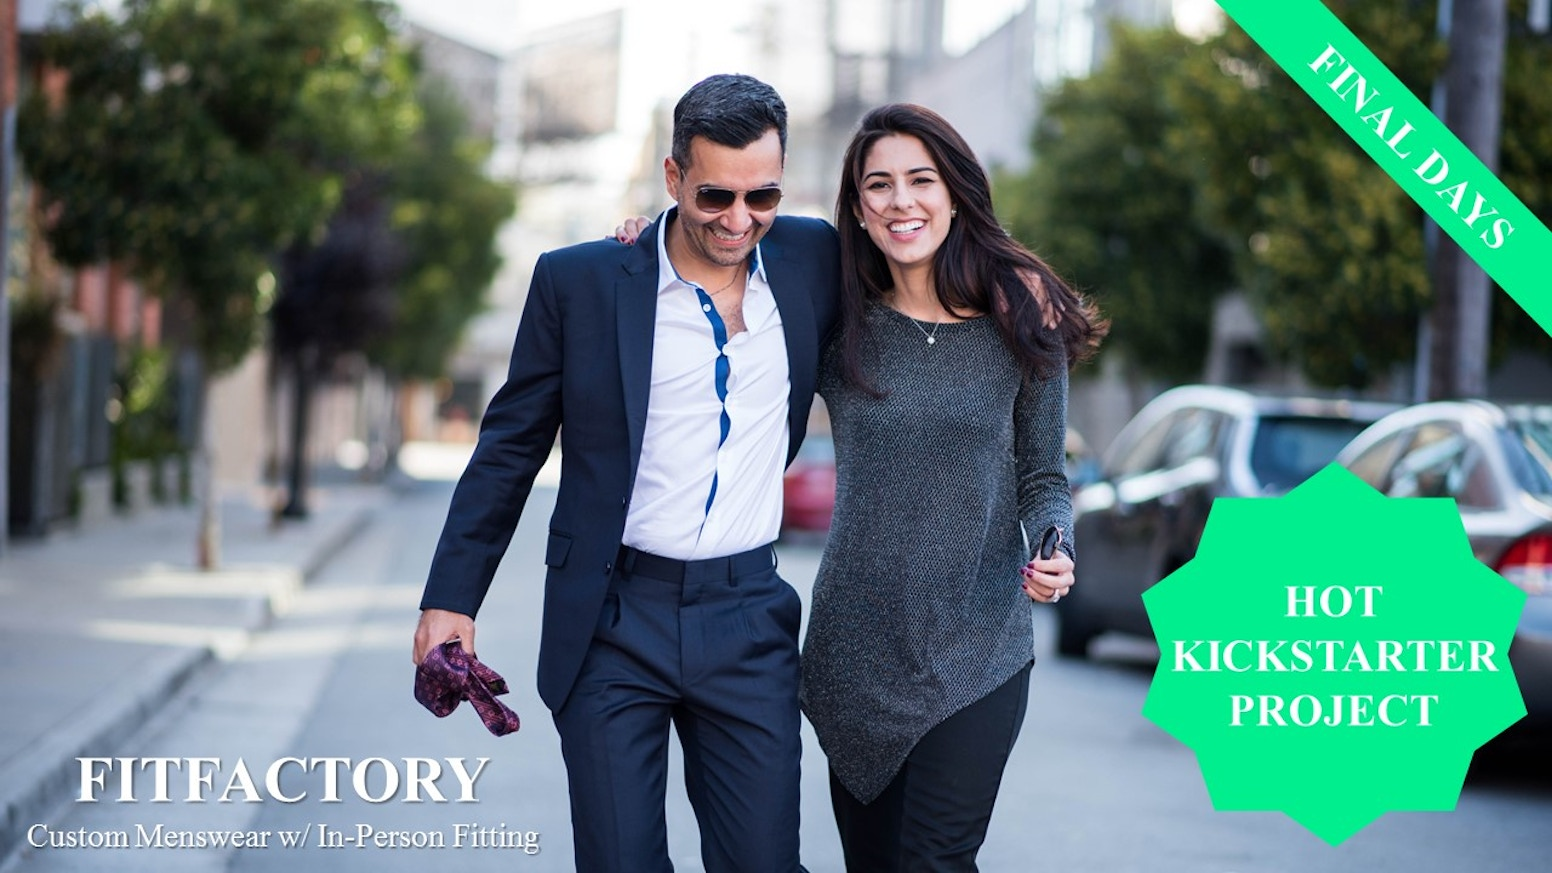 FitFactory: High quality fitted SUITS & SHIRTS at a great price at your convenience with access to in person fitting via local tailors.